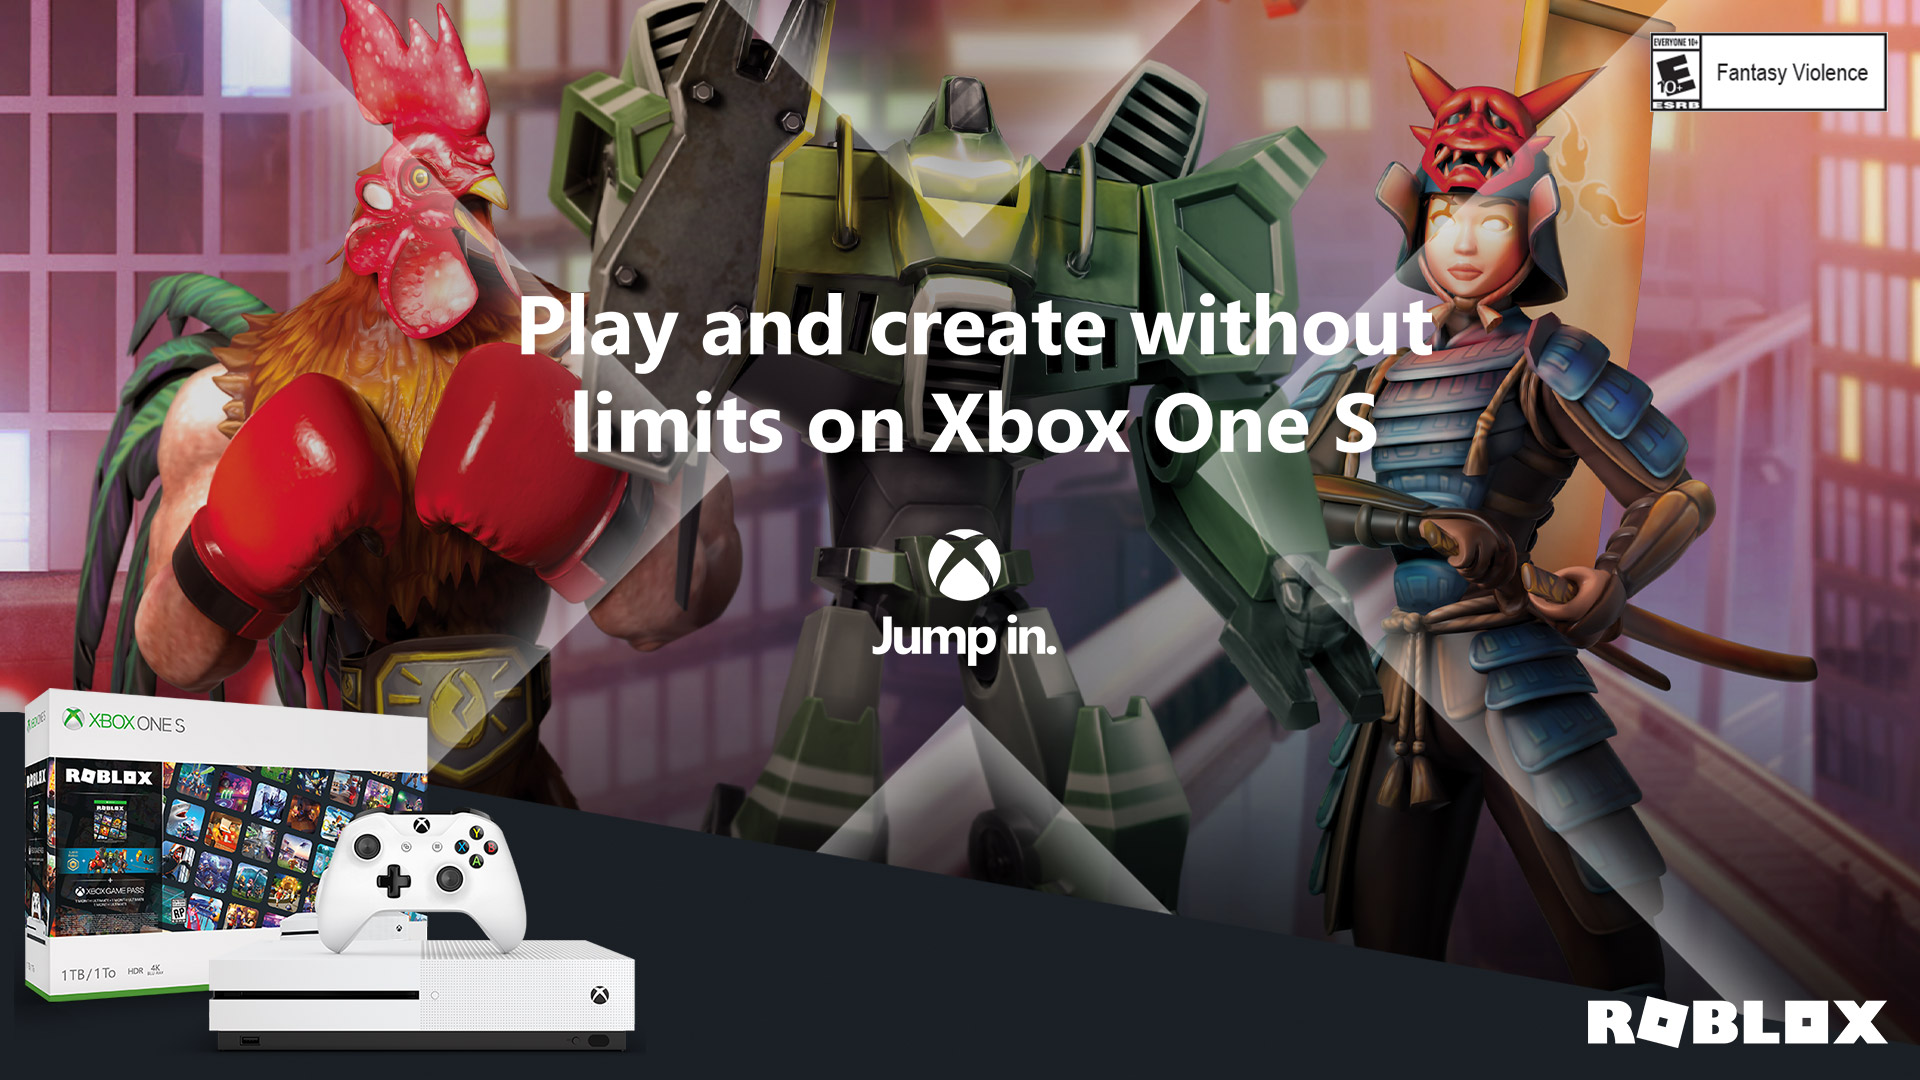 Xbox On Twitter If You Can Imagine It You Can Create It Build